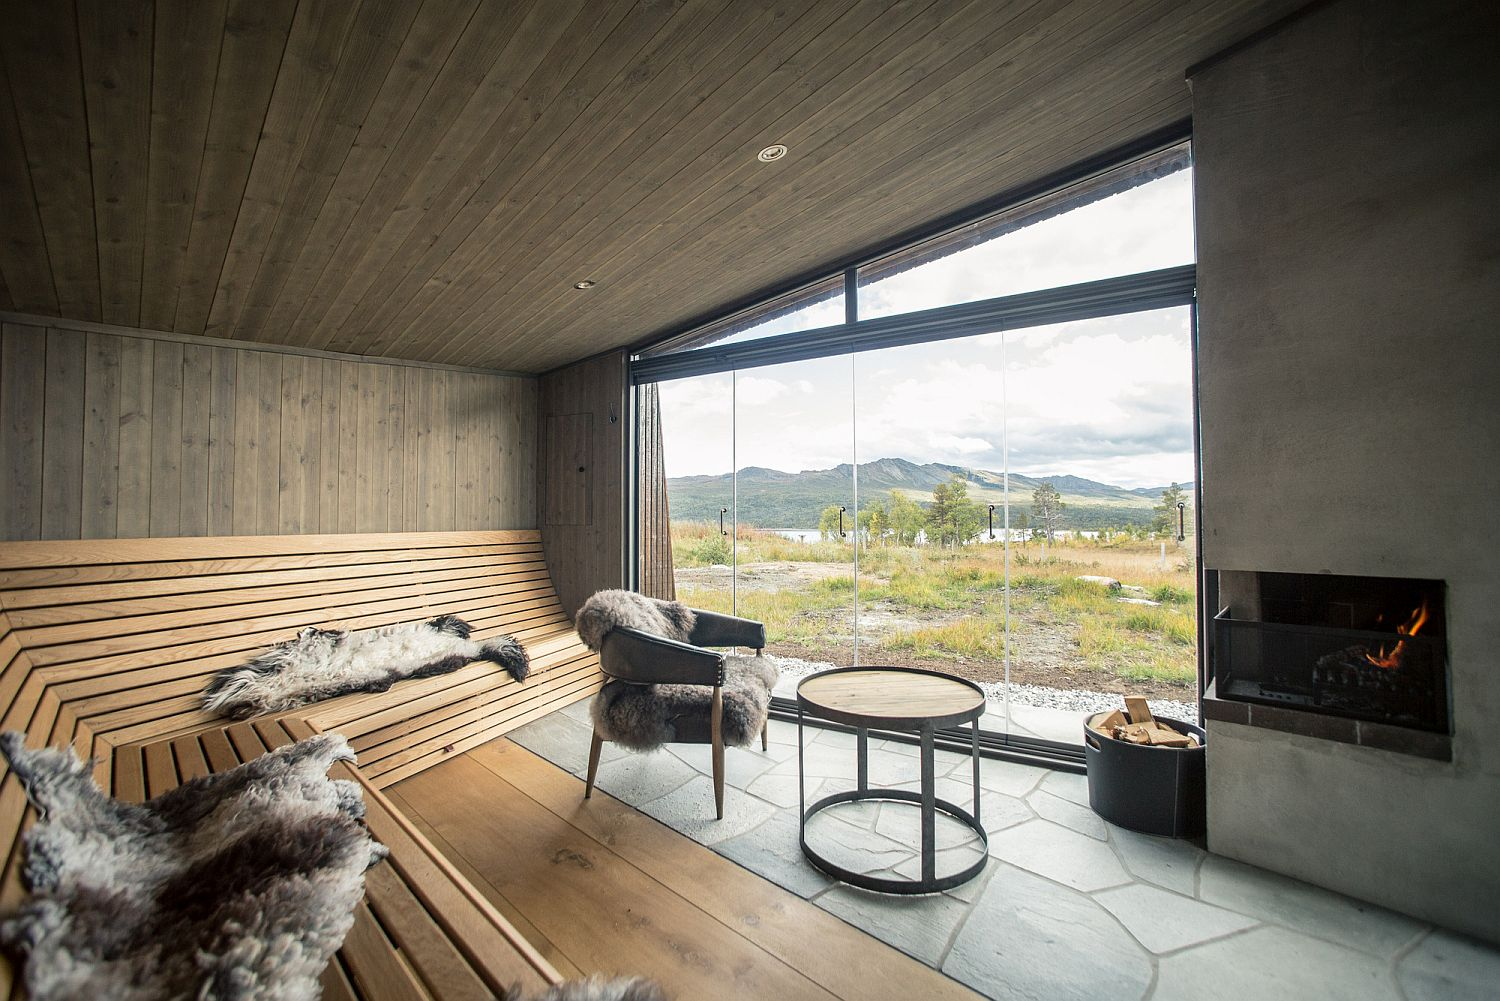 Interior of the cabin with lovely seating that offers a view of the landscape beyond